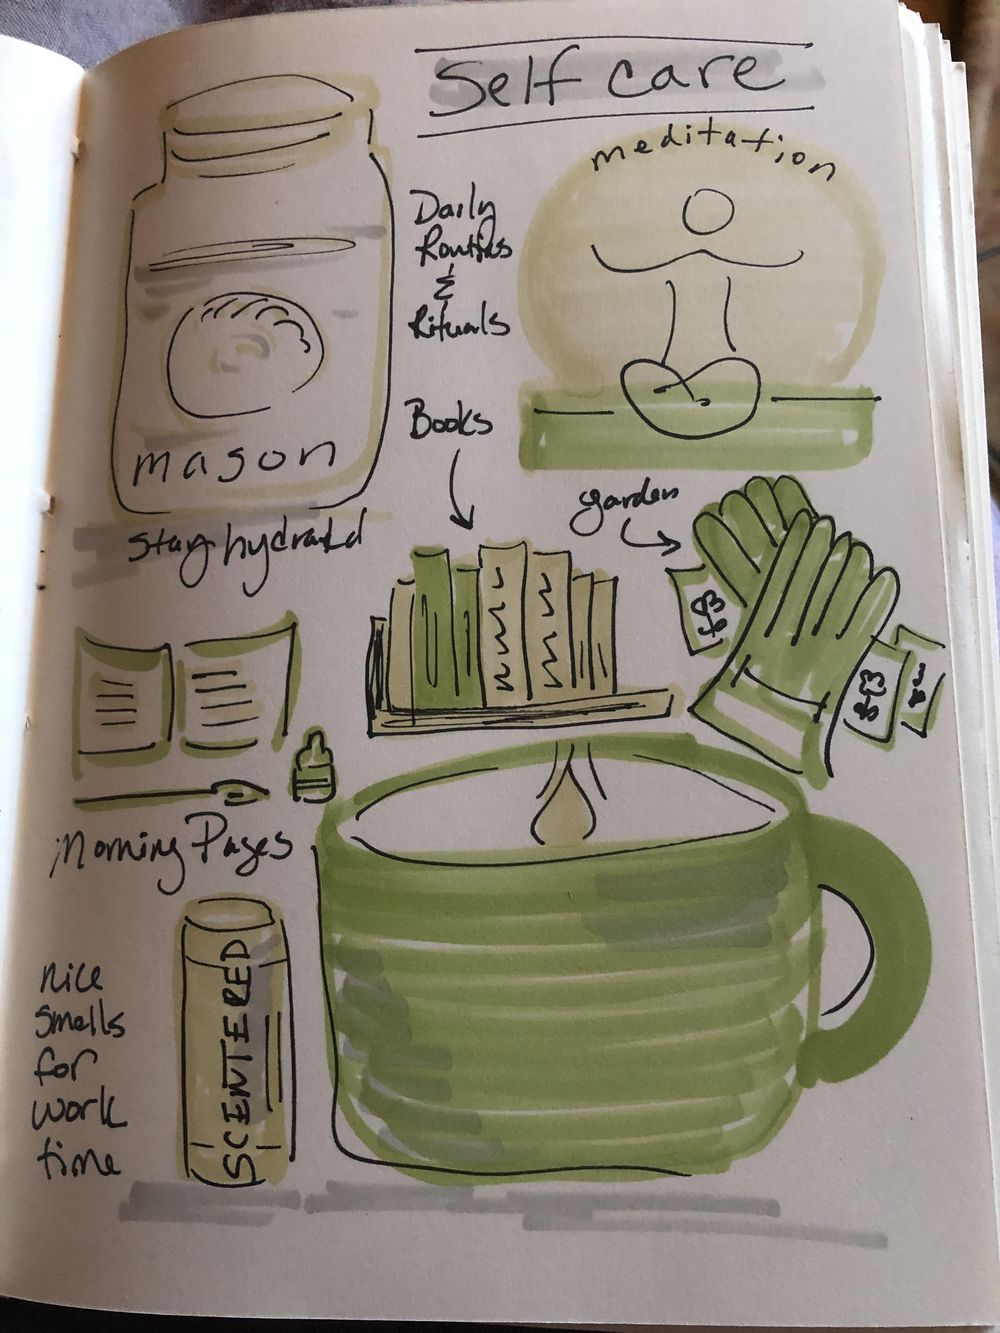 14 days of illustrated journal prompts - image 7 - student project